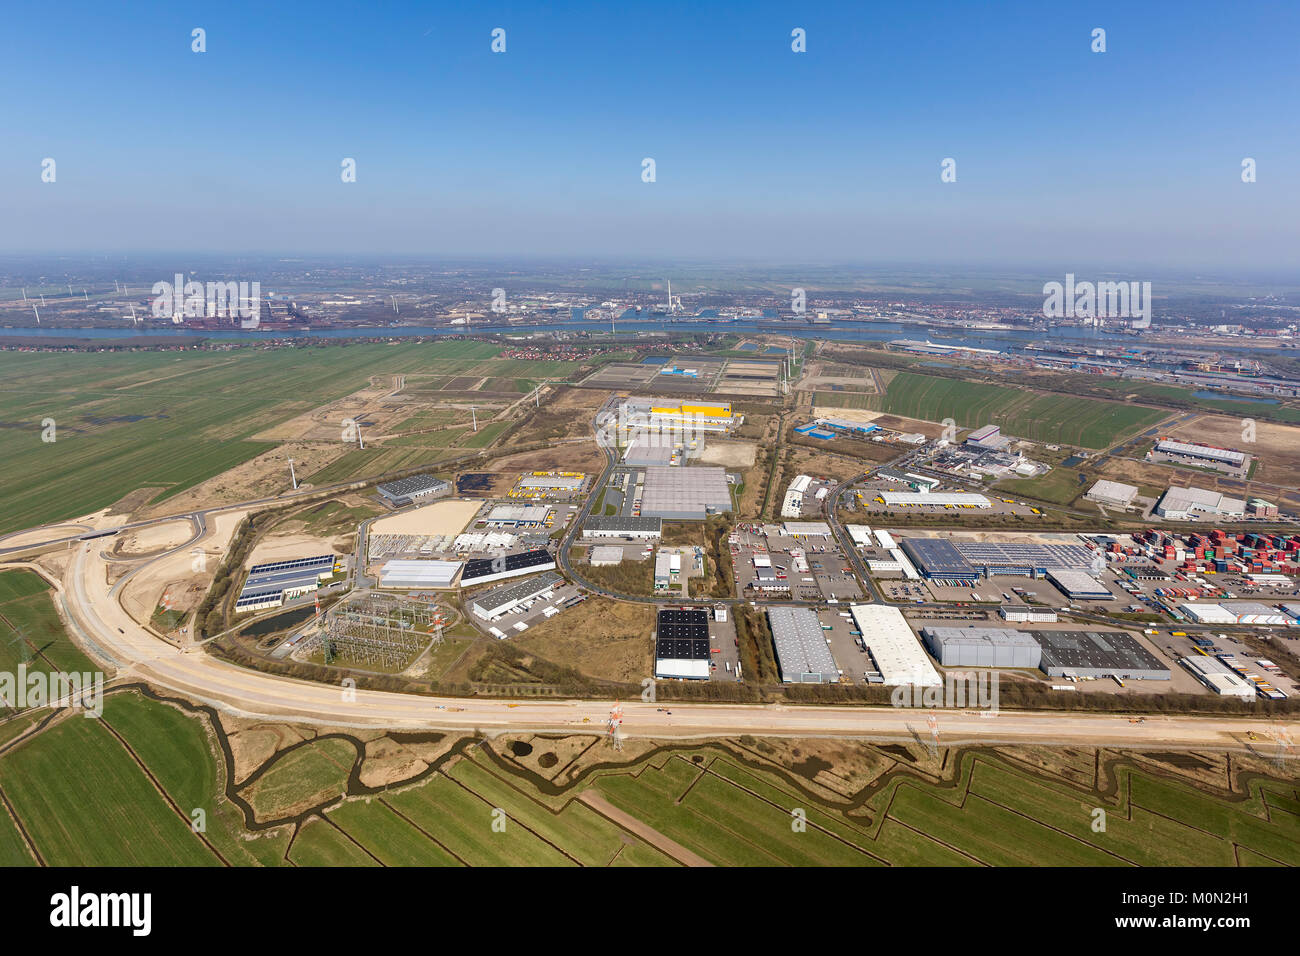 GVZ Bremen, goods distribution center, industrial zone south of the port of Bremen, aerial view, aerial photographs - Stock Image